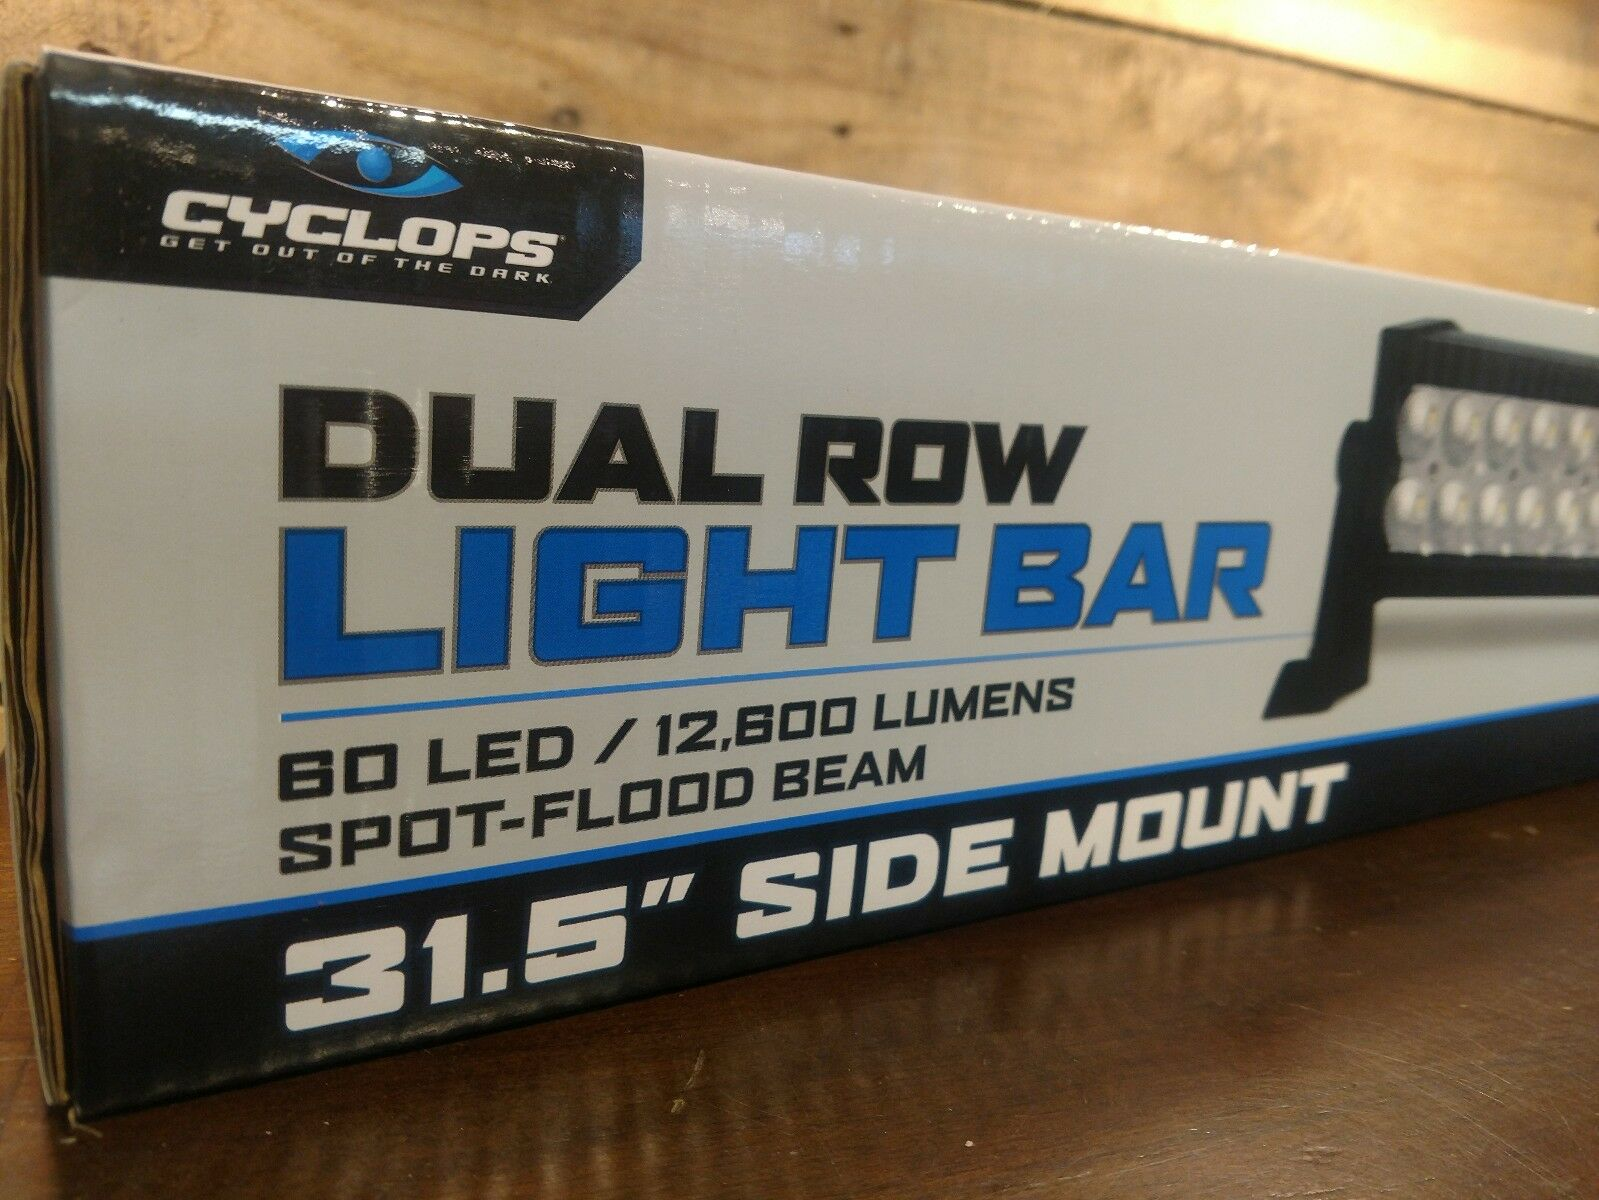 Cyclops Light Bar - DUAL ROW SIDE MOUNT  - 180W  support wholesale retail